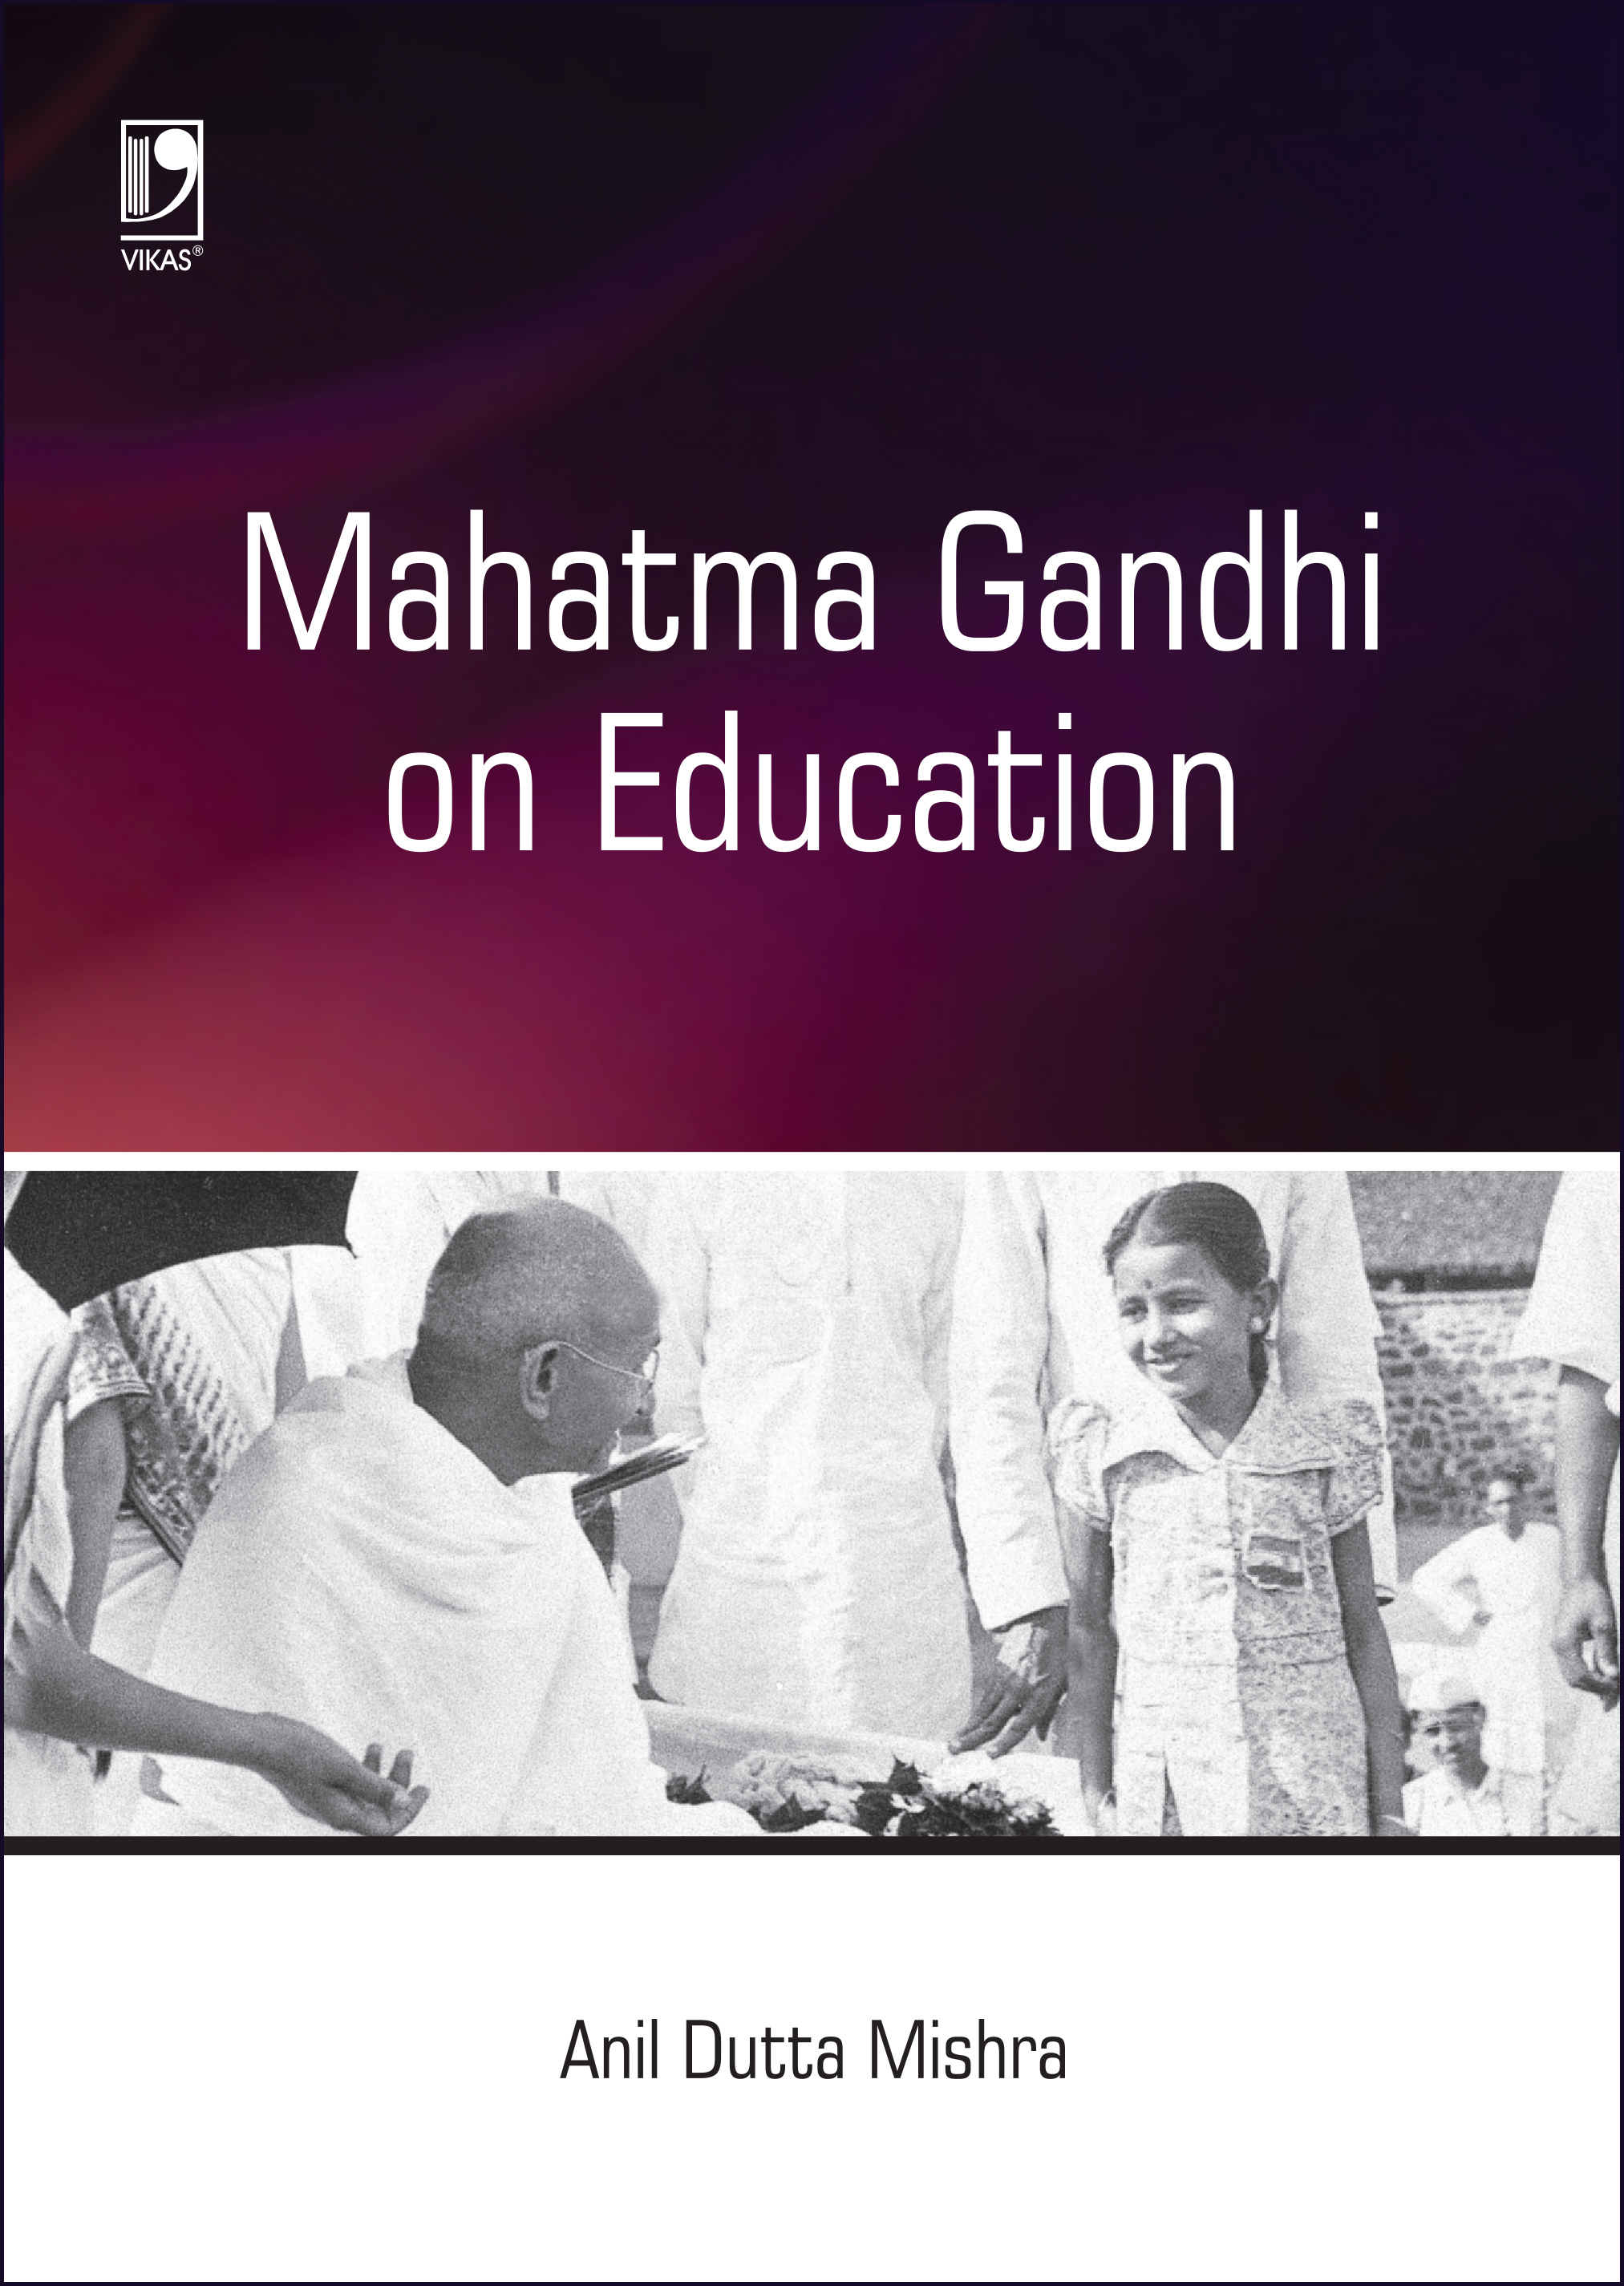 Mahatma Gandhi on Education by  Anil Dutta Mishra